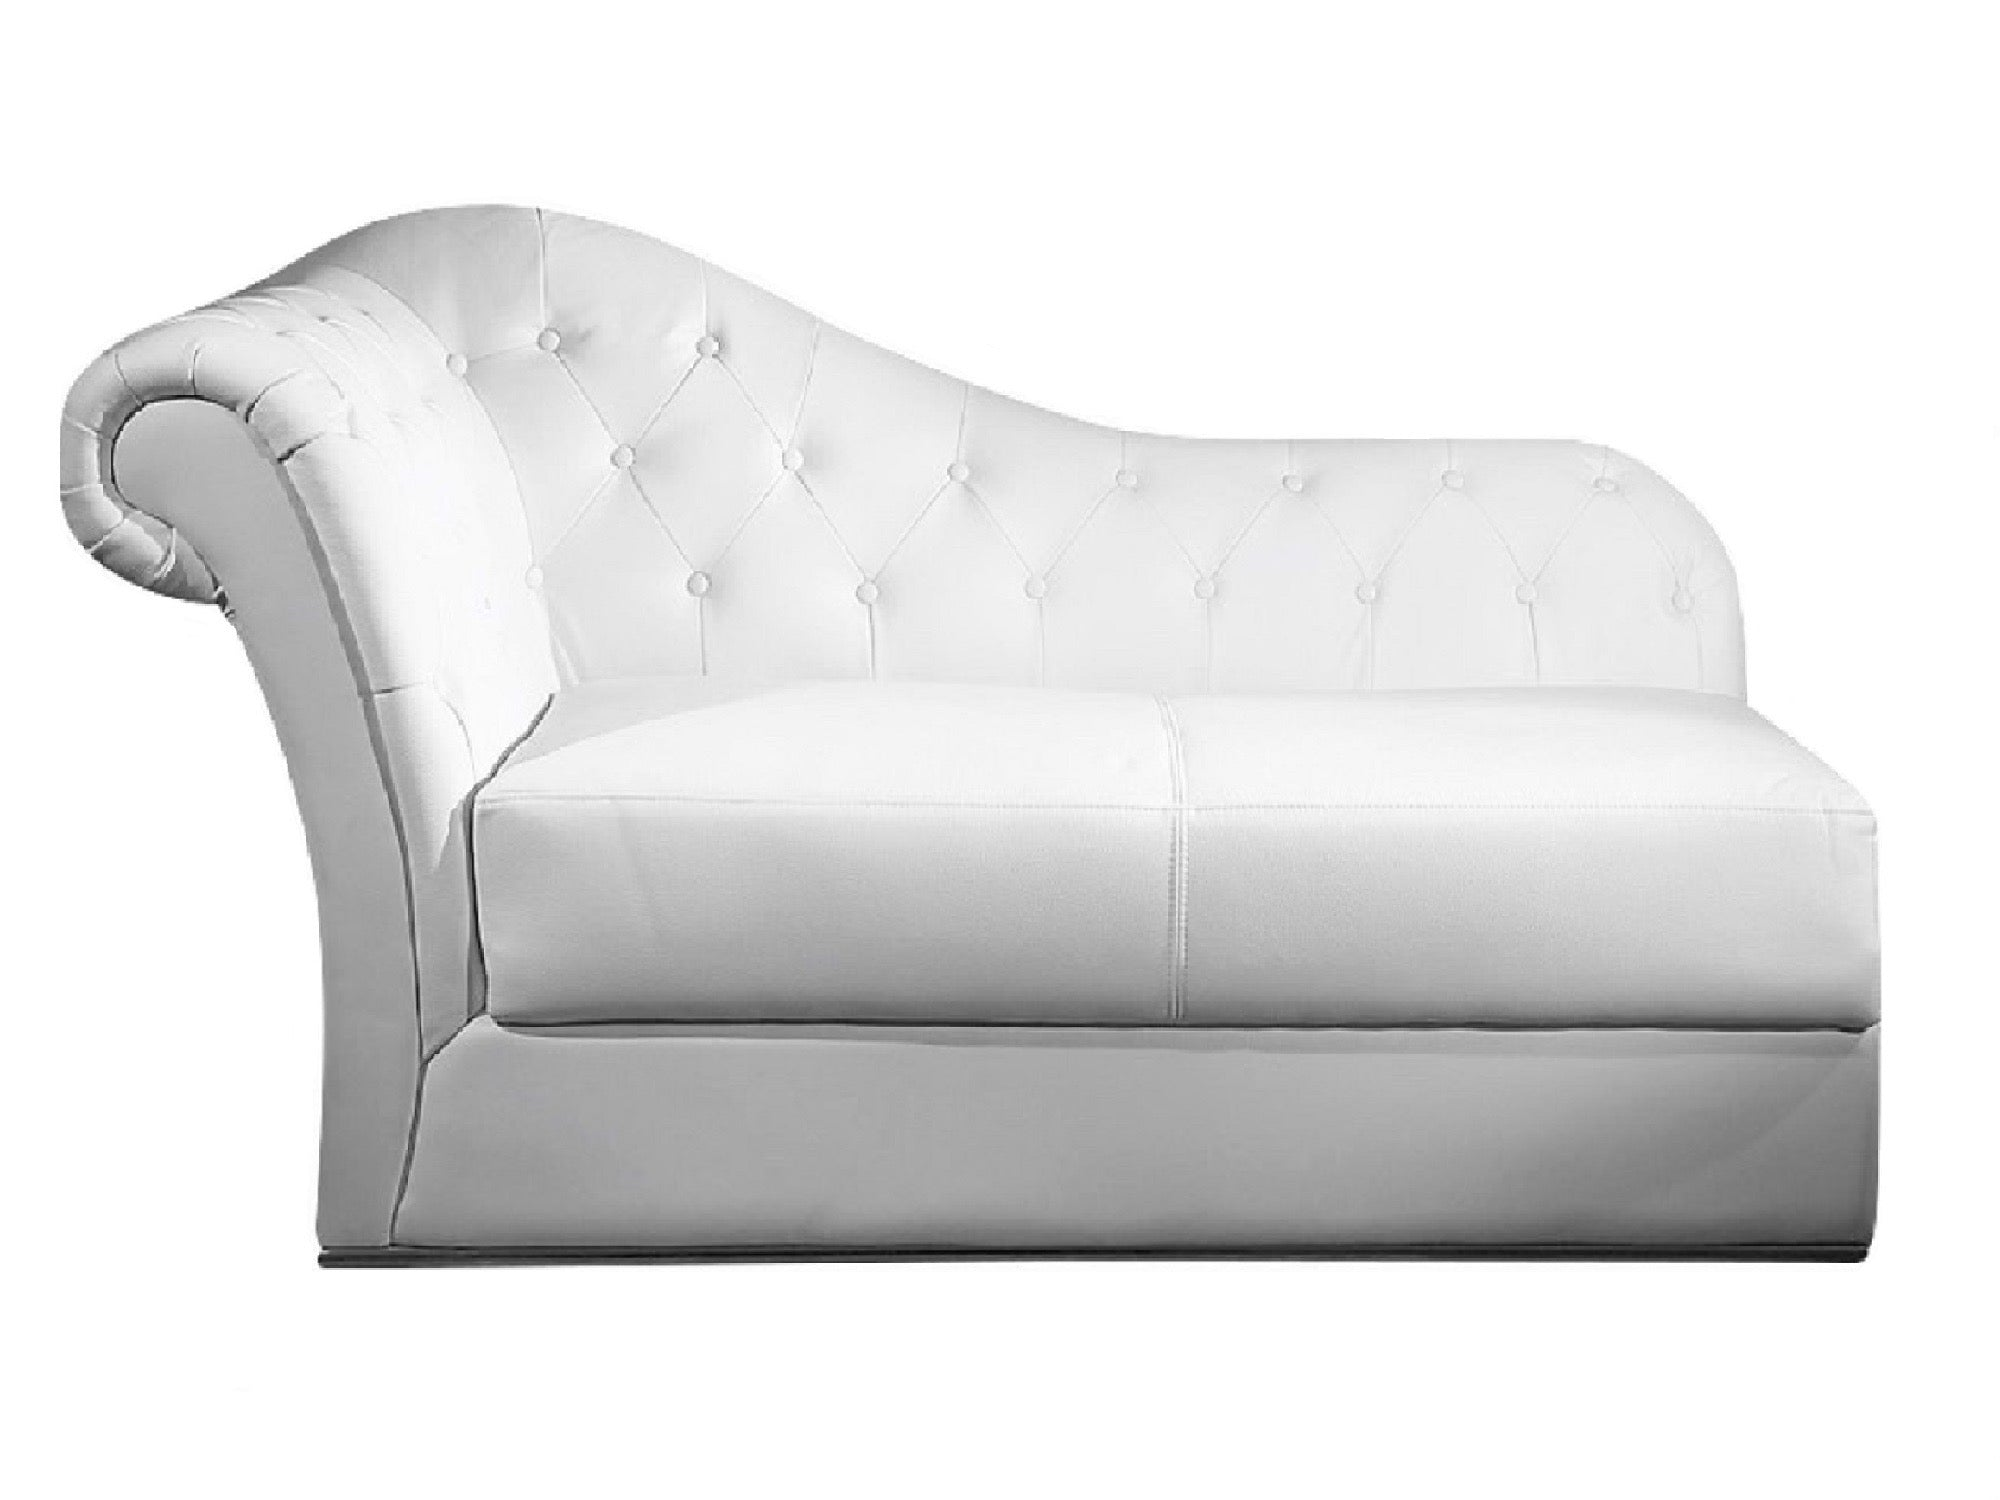 ROYALTY CLASSIC CHAISE LOUNGE